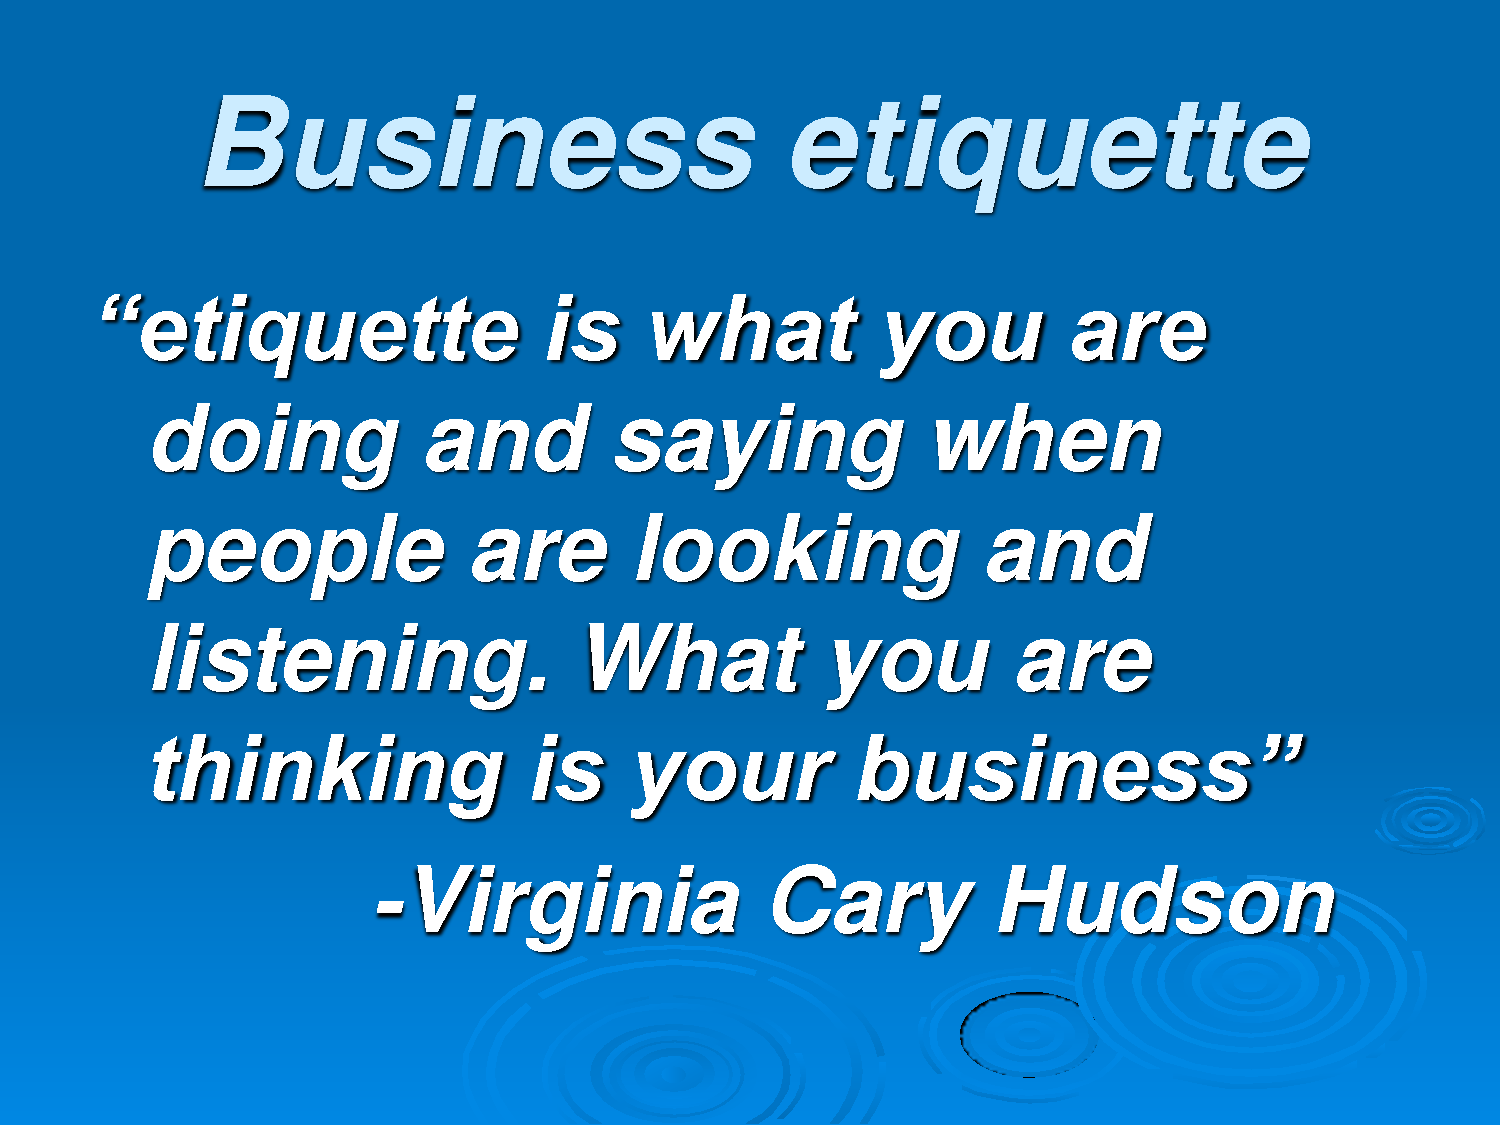 business etiquette essay  nisatasjplusco business etiquette essay quotes about etiquette  quotes